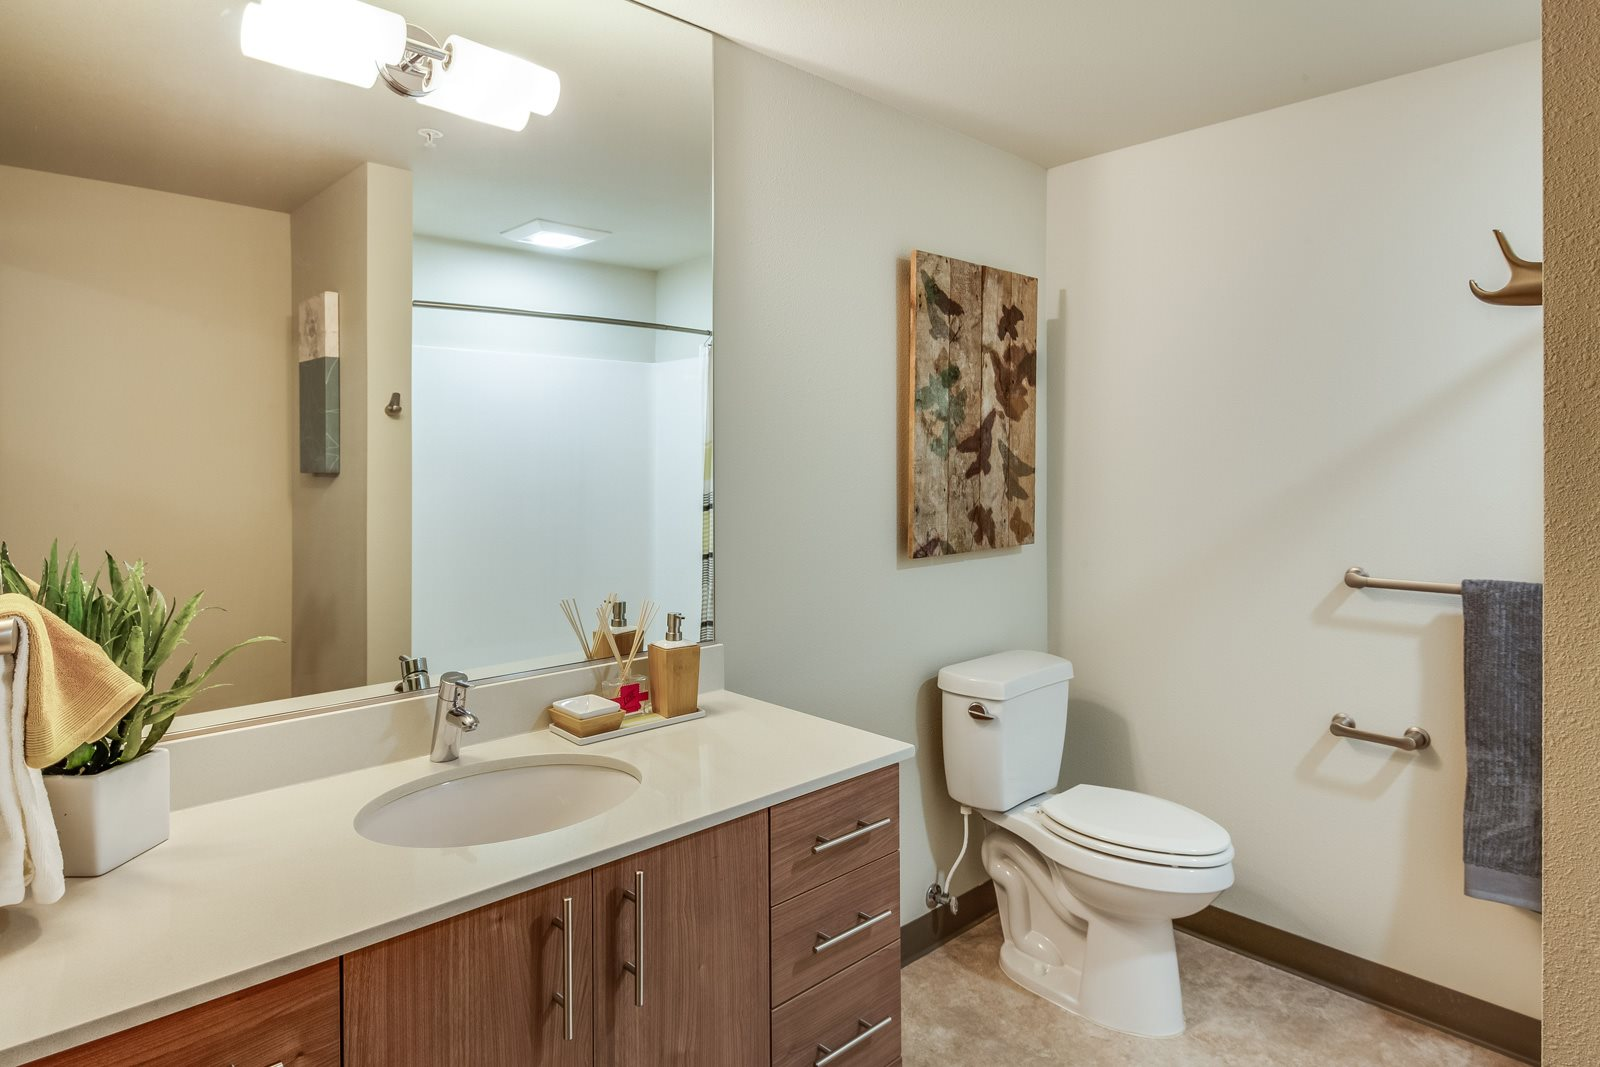 Designer Bathrooms with Frameless Mirrors at Platform 14, 1030 NE Orenco Station Pkwy, Hillsboro